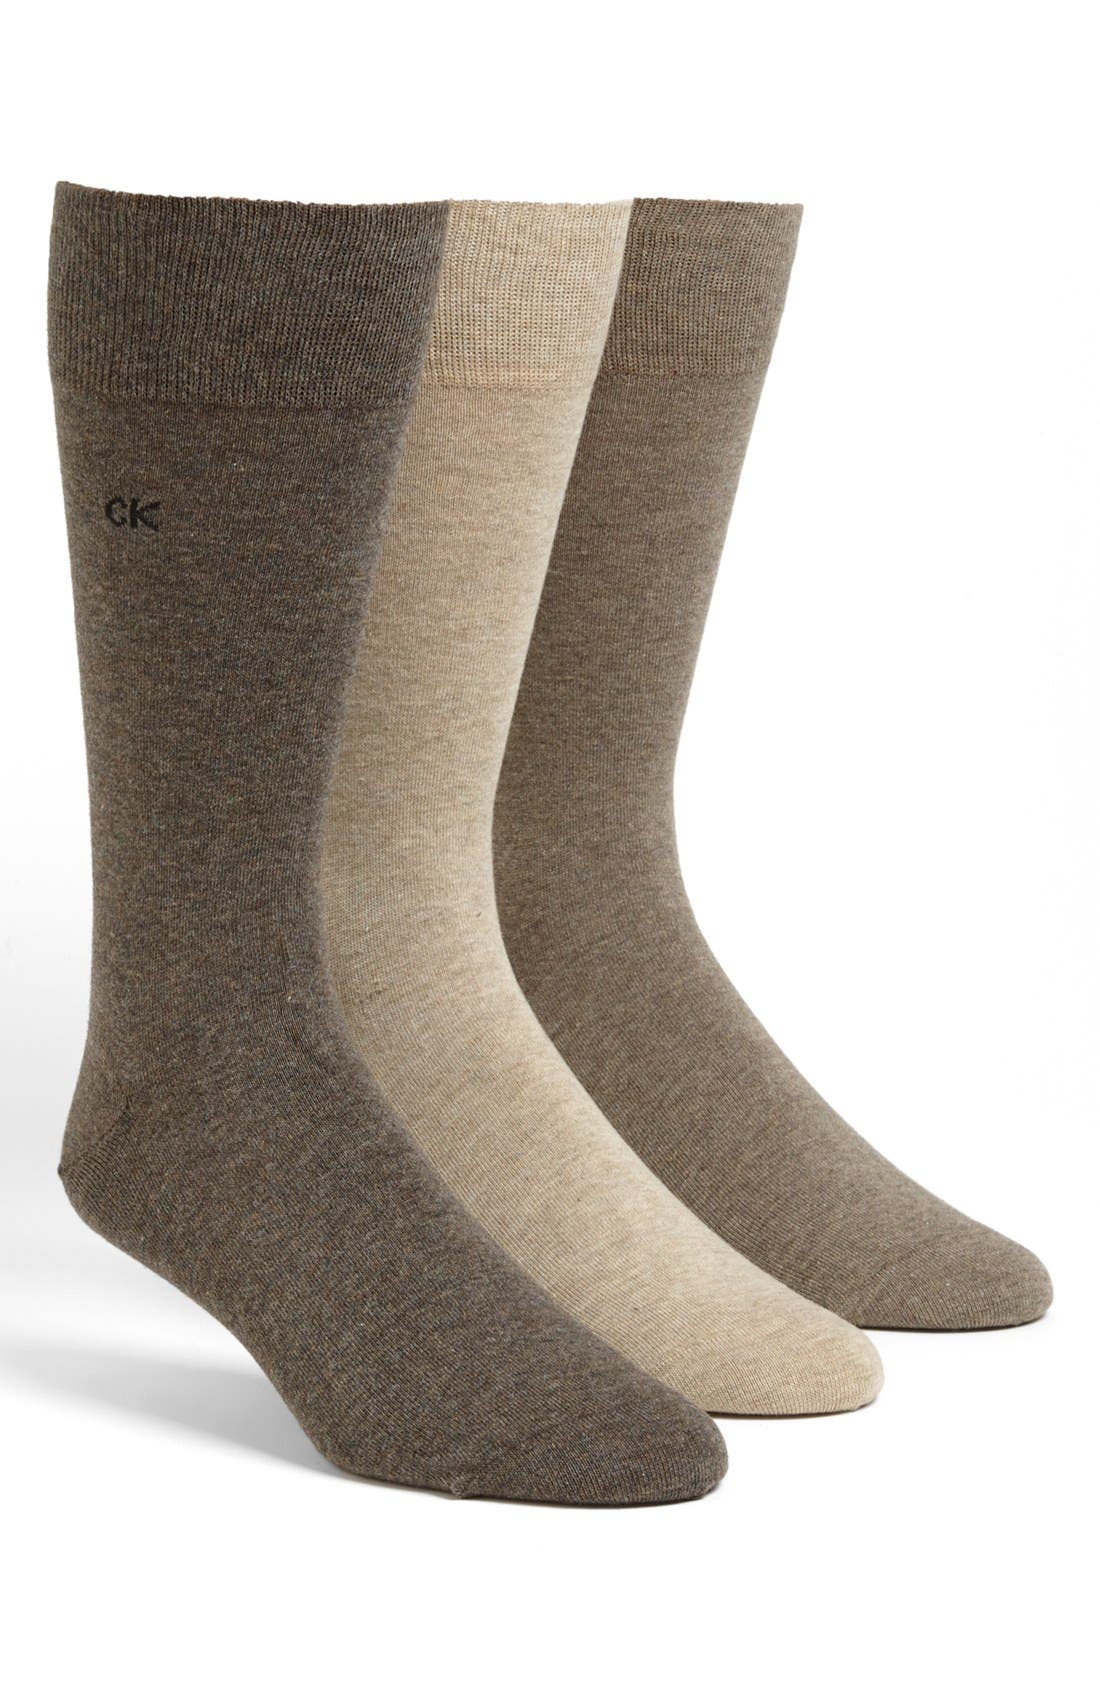 CALVIN KLEIN Assorted 3-Pack Socks, Main, color, ASSORTED BROWN